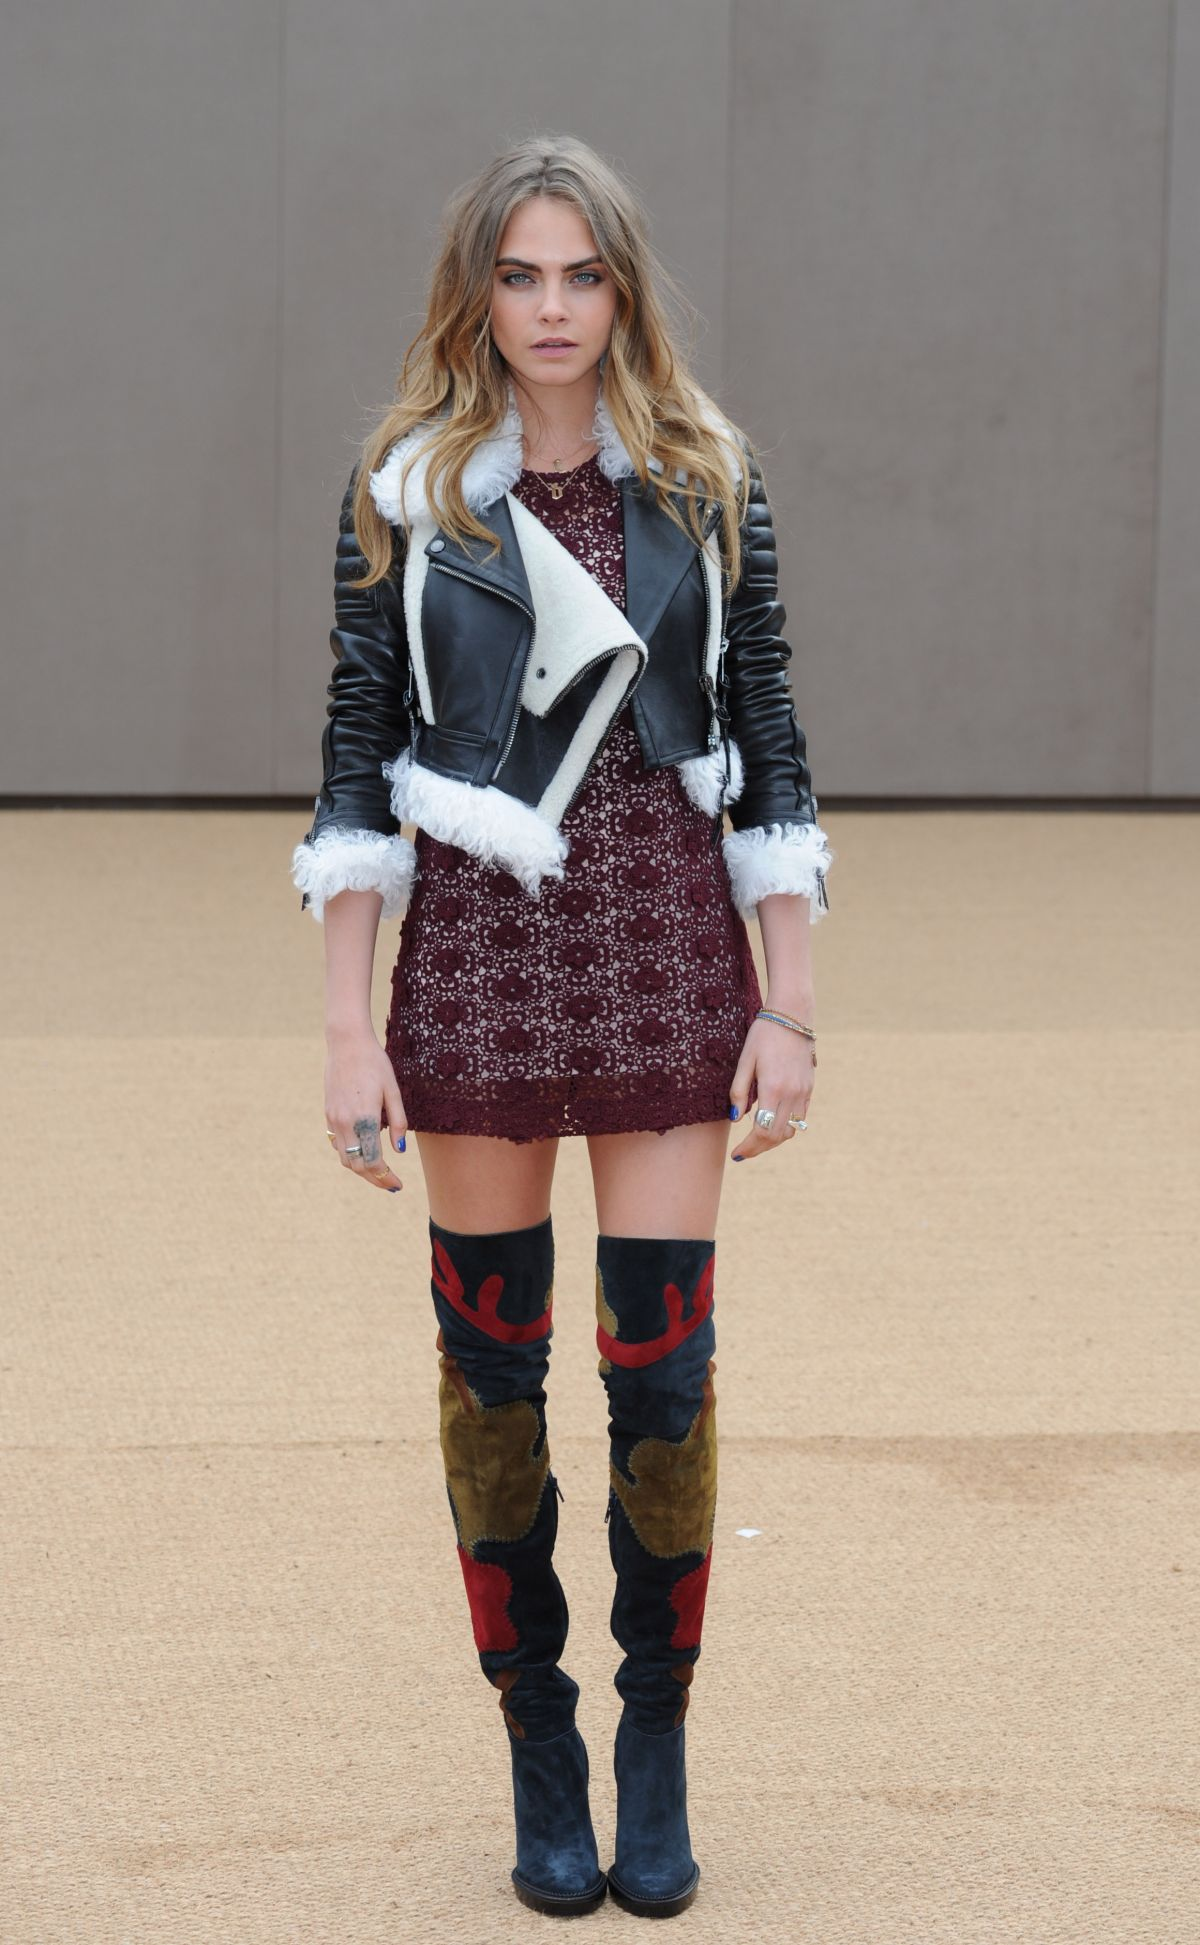 Cara delevingne at burberry fashion show in london hawtcelebs - Burberry fashion show ...